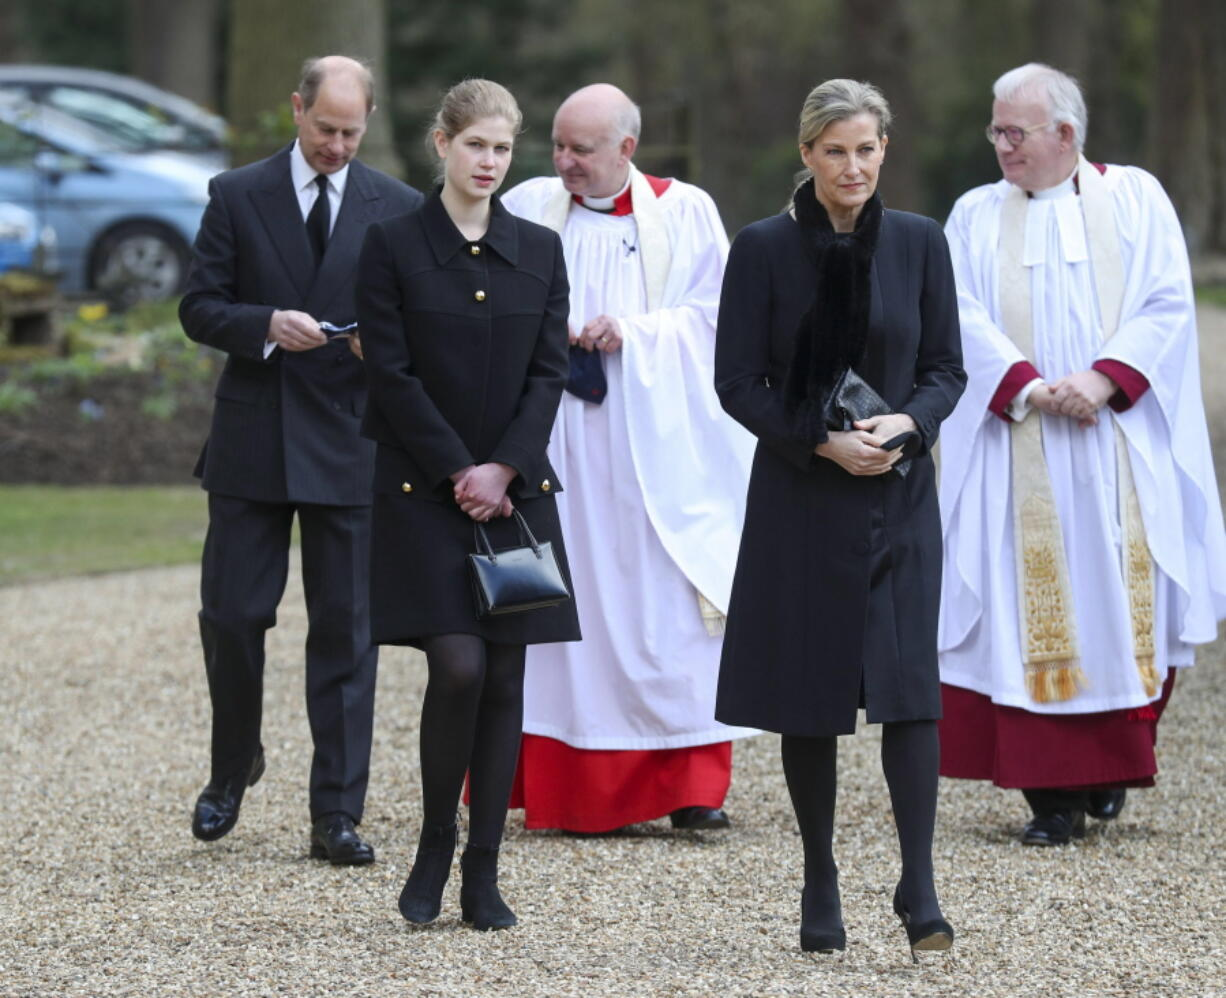 Britain's Prince Edward, Sophie Countess of Wessex and their daughter Lady Louise Windsor, attend the Sunday service at the Royal Chapel of All Saints at Royal Lodge, Windsor, following the announcement of Prince Philip, in England, Sunday, April 11, 2021. Britain's Prince Philip, the irascible and tough-minded husband of Queen Elizabeth II who spent more than seven decades supporting his wife in a role that mostly defined his life, died on Friday.